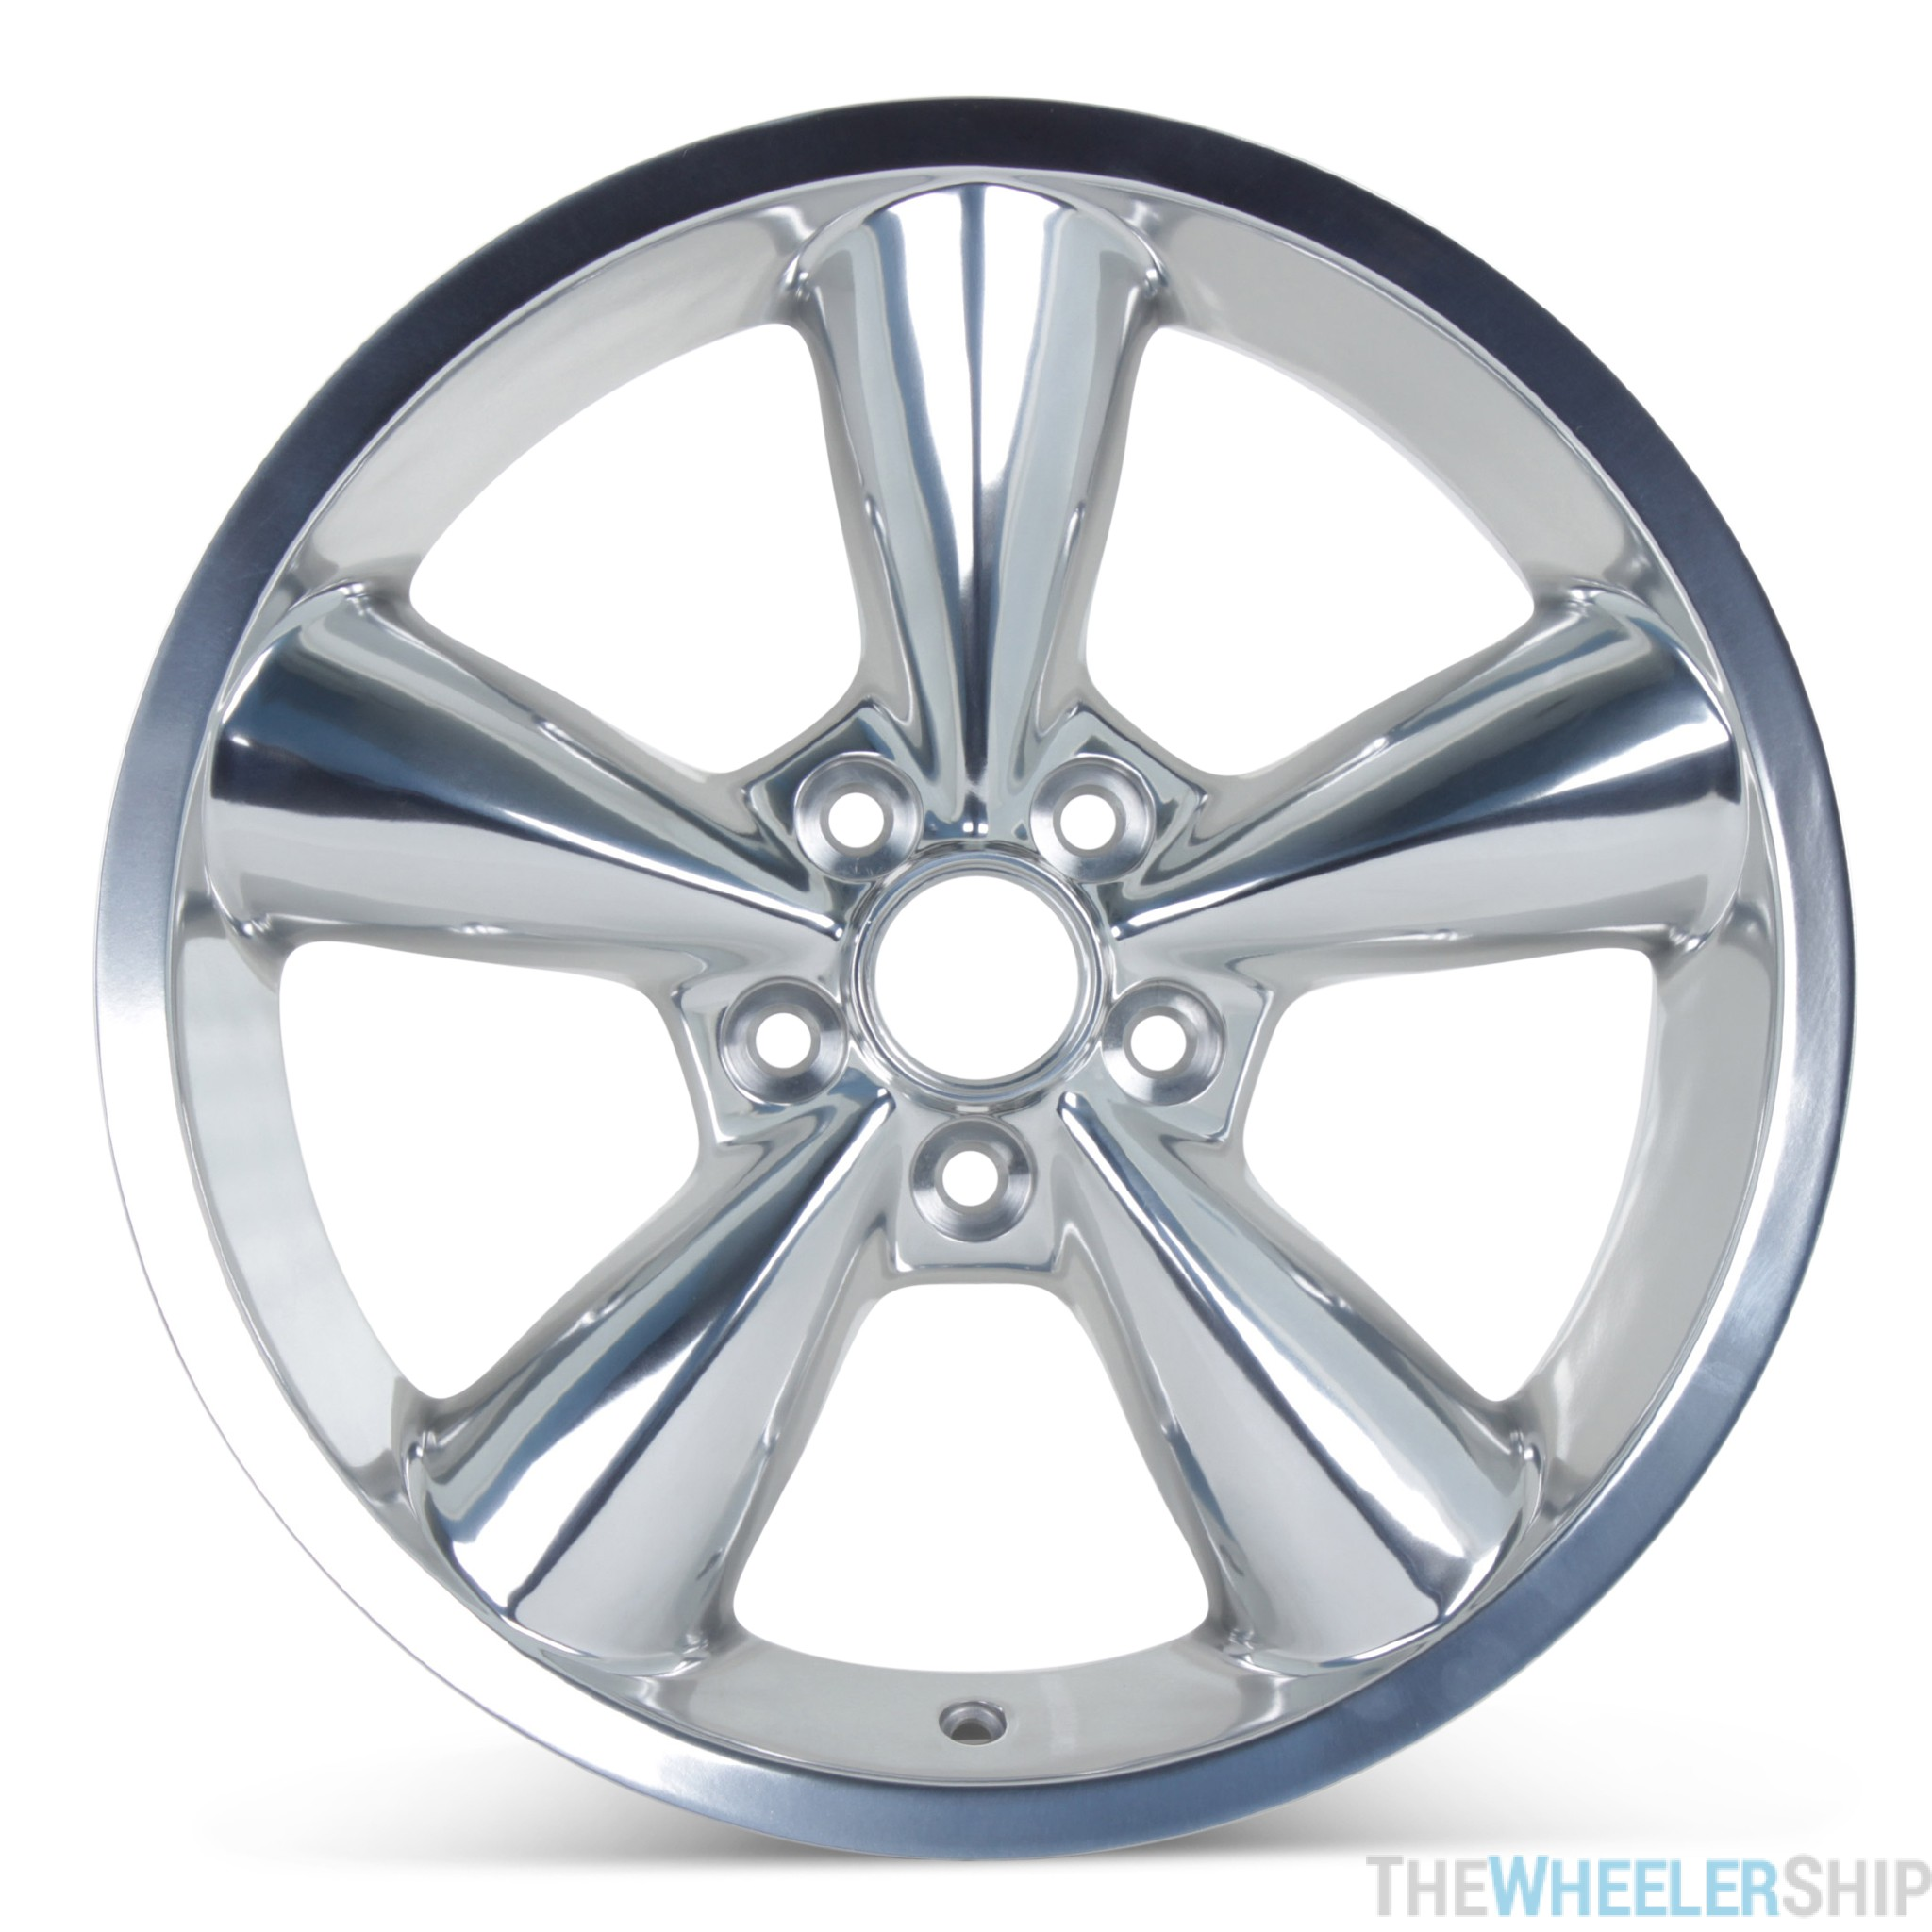 2008 Mustang Rims >> New 18 X 8 5 Replacement Wheel For Ford Mustang 2006 2007 2008 2009 Rim 3648 Polished